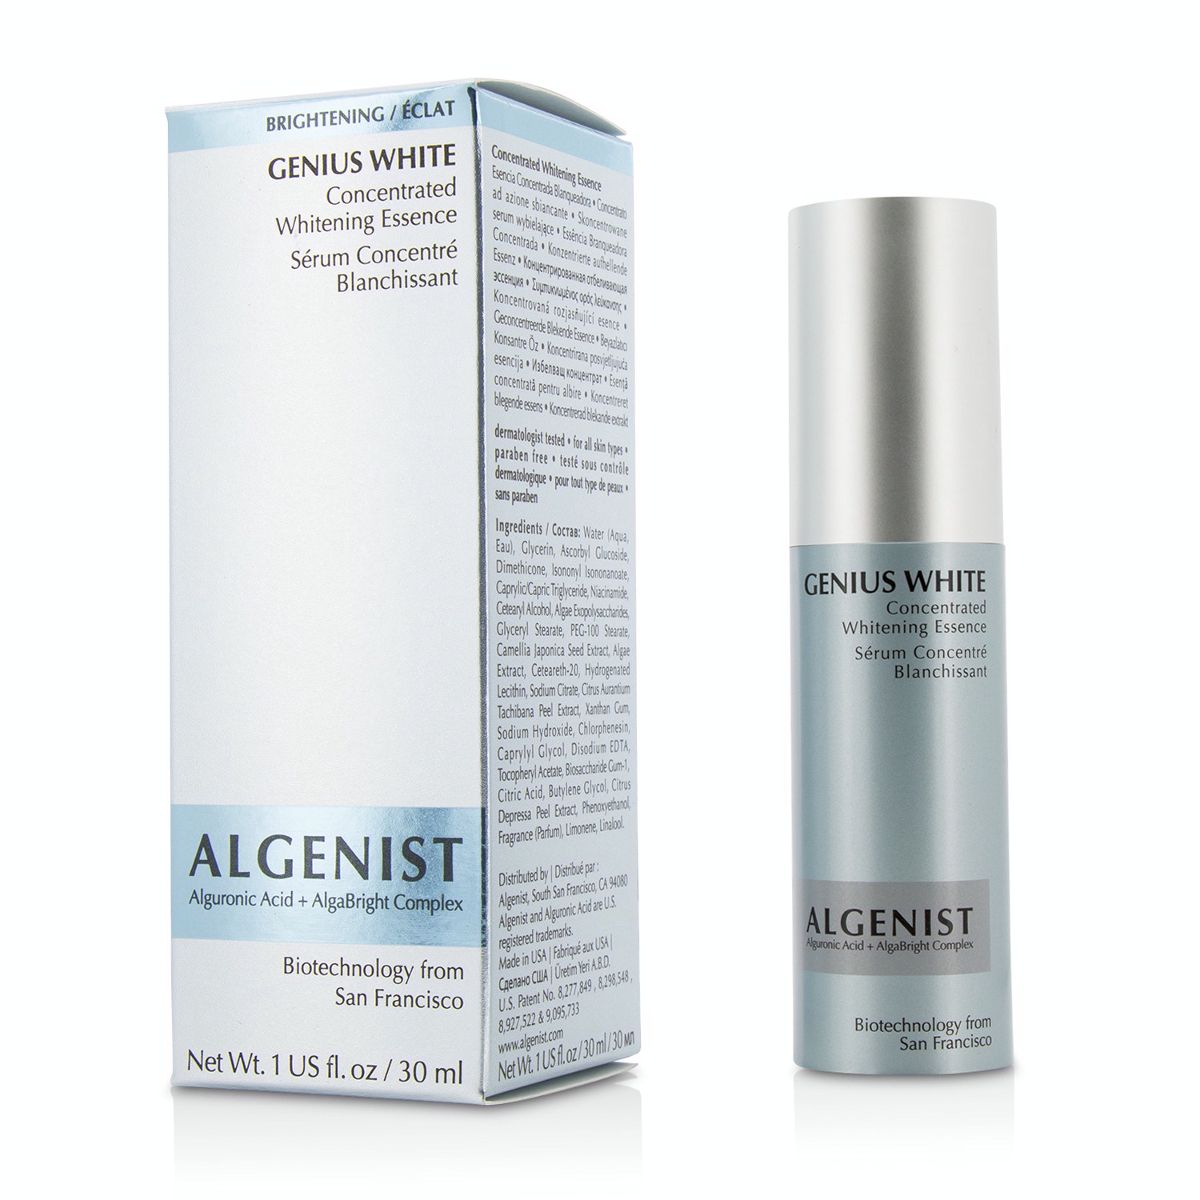 Genius White Concentrated Whitening Essence Algenist Image